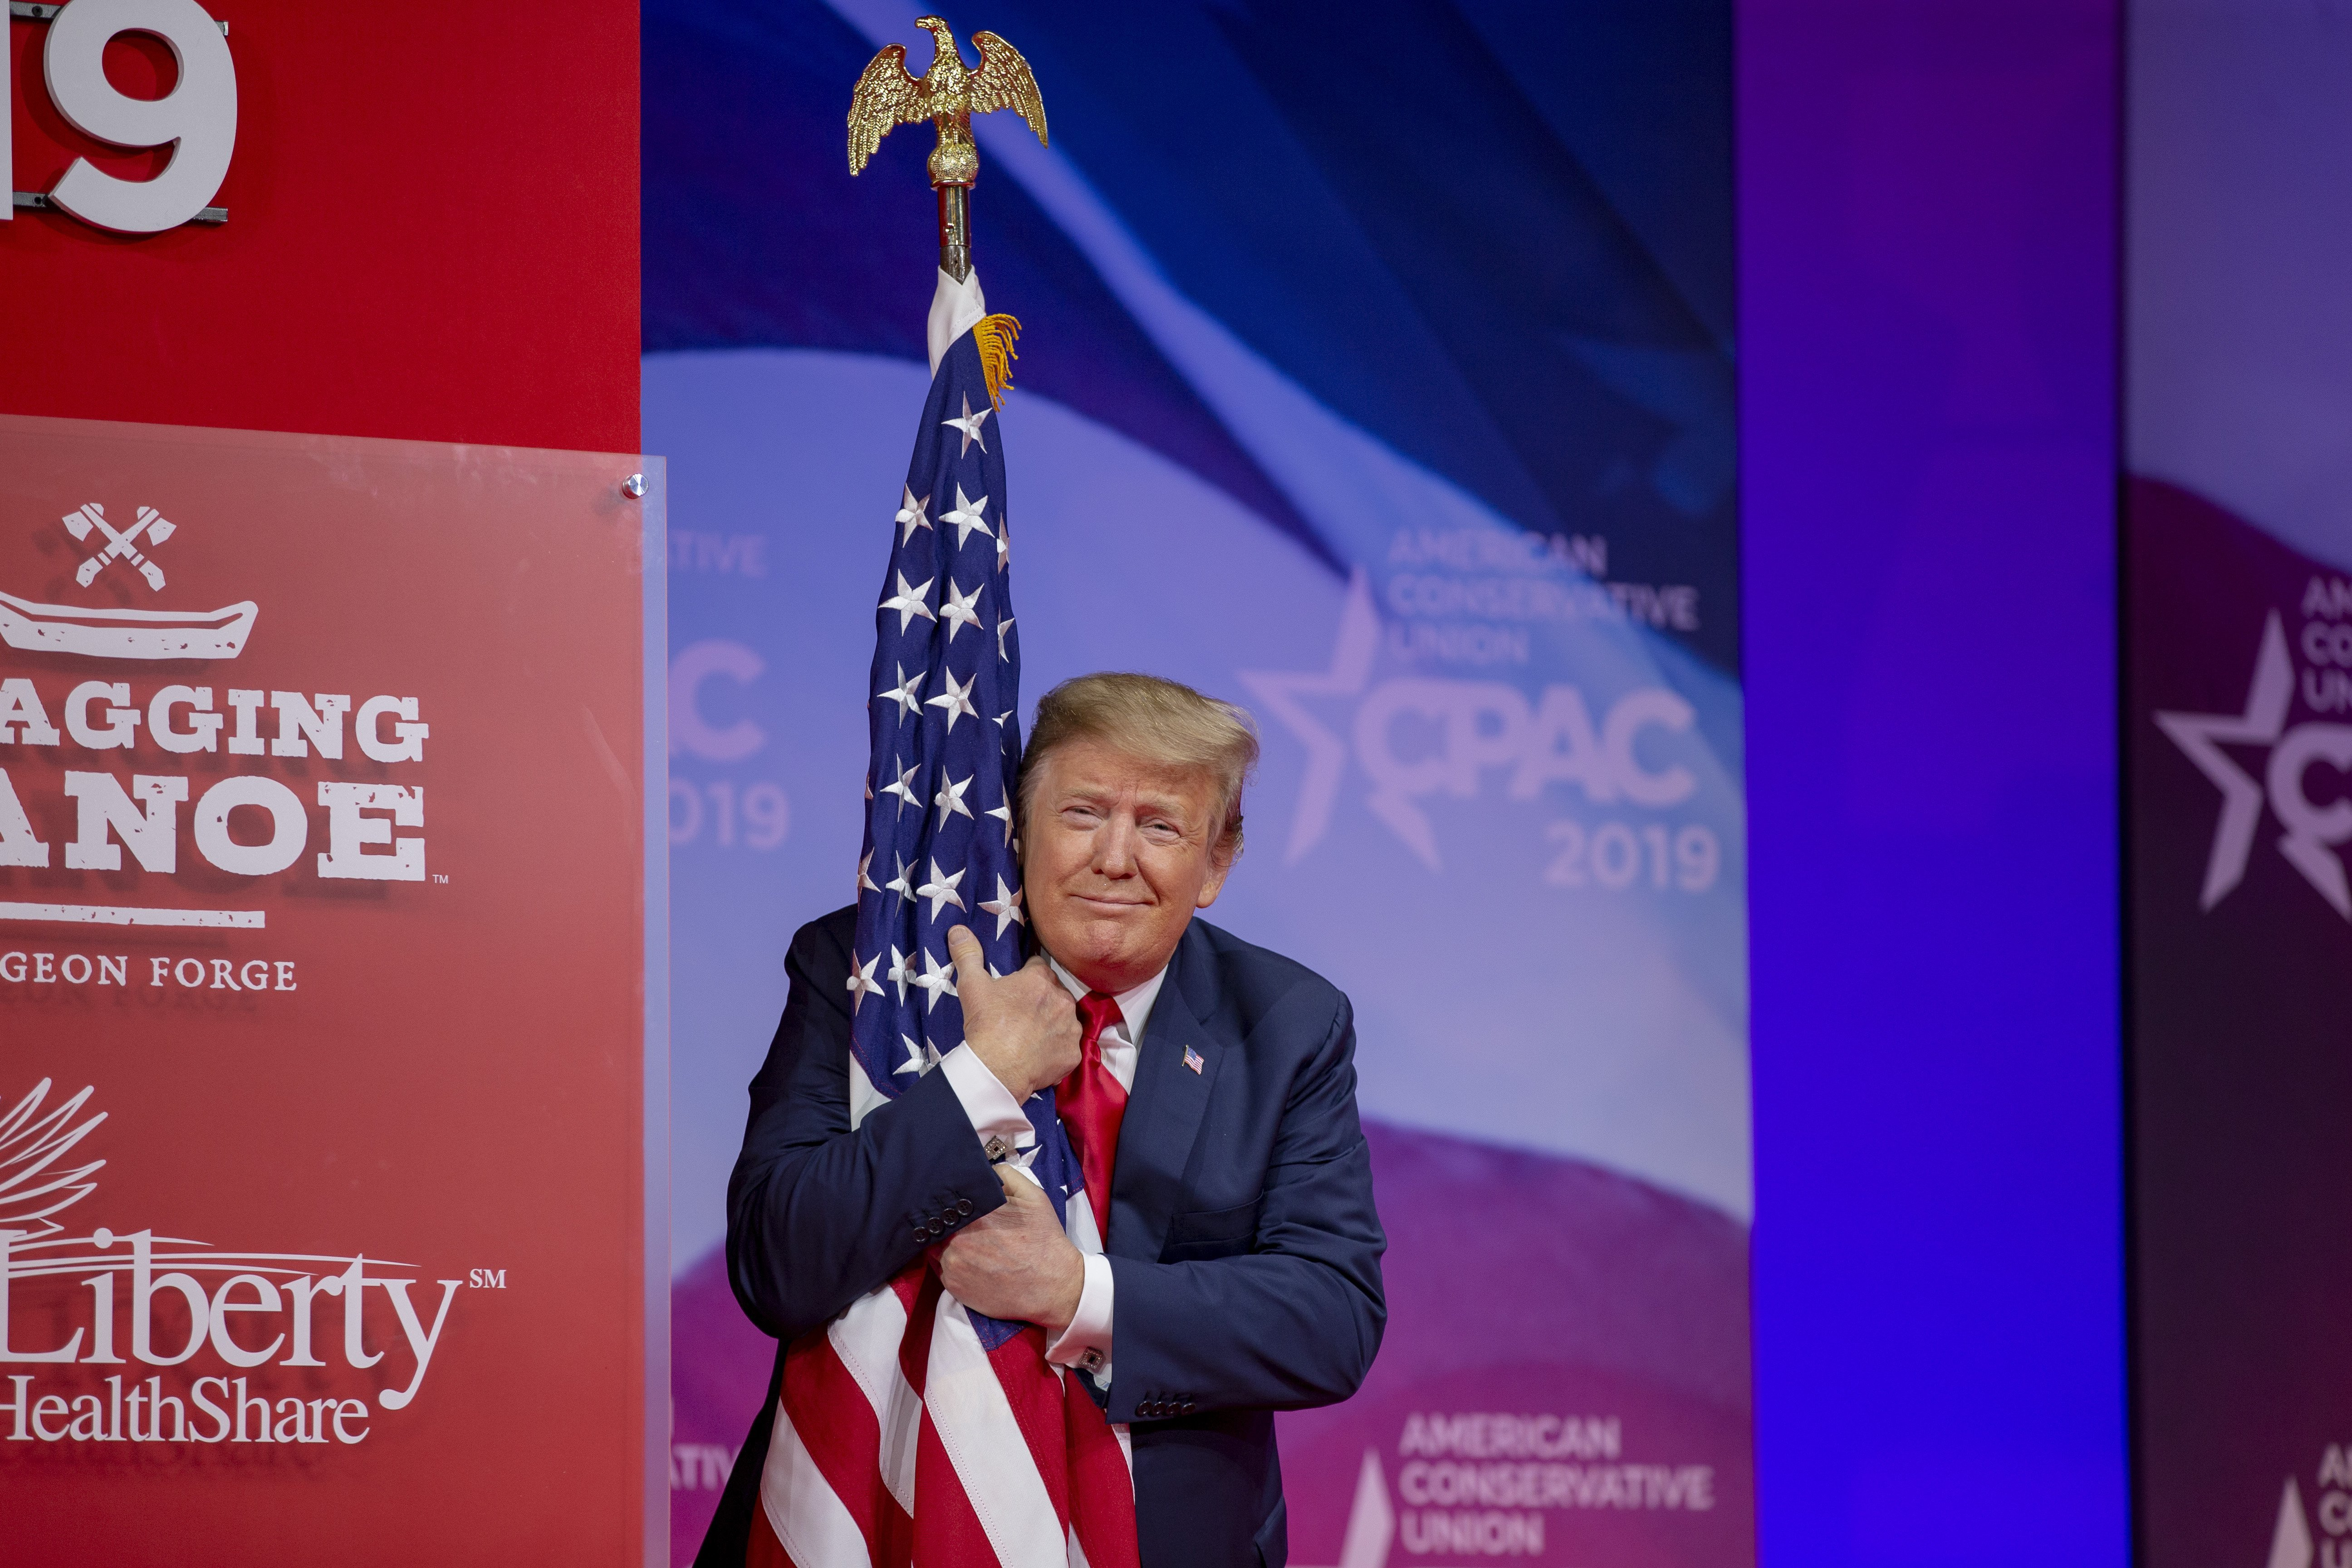 Donald Trump hugging the American flag at the 2019 CPAC in Maryland | Photo: Getty Images